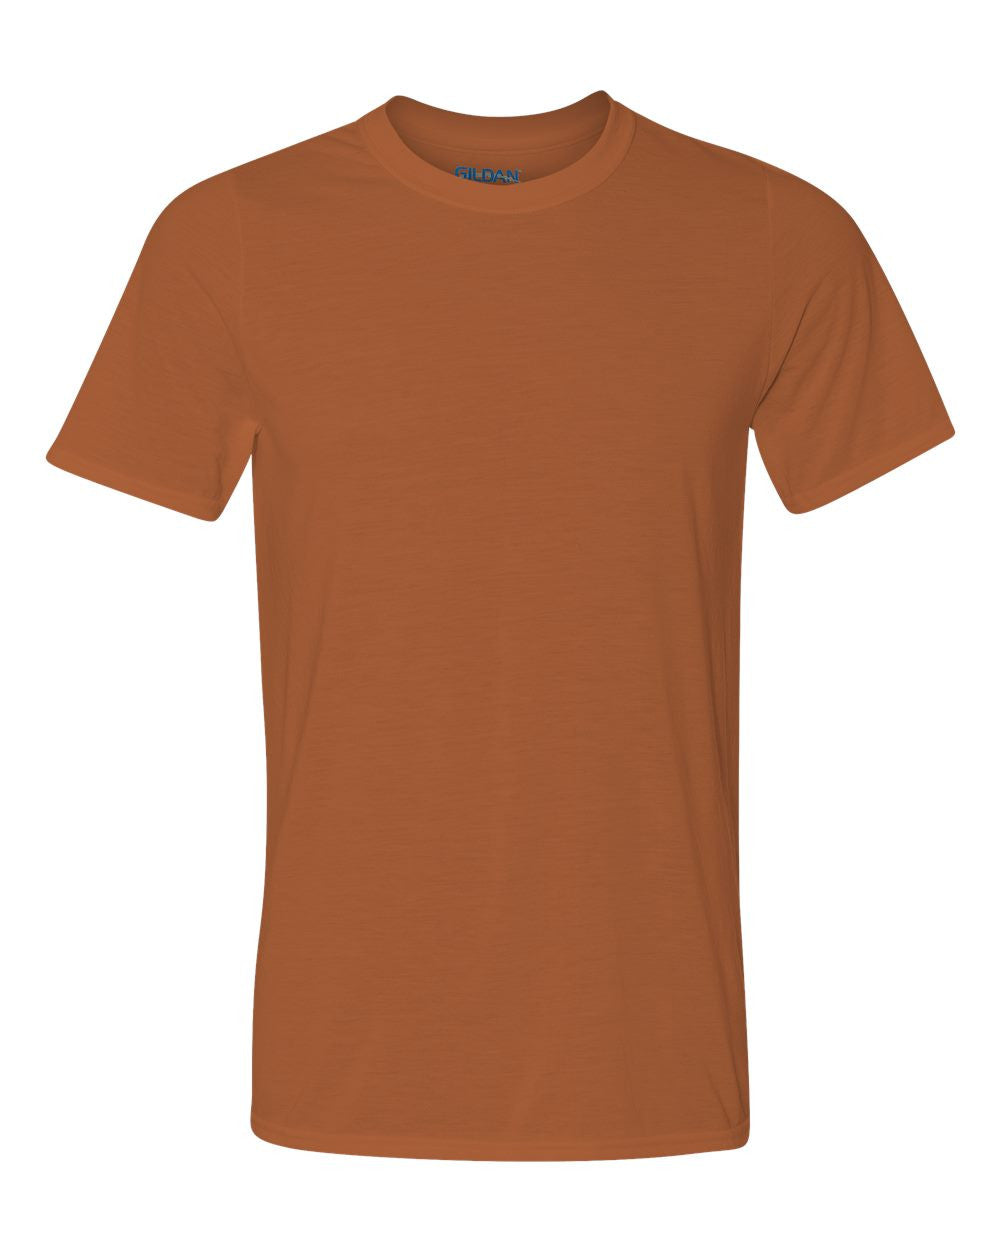 3 pack : Gildan Men's Performance T-shirt - Discountedrack.com